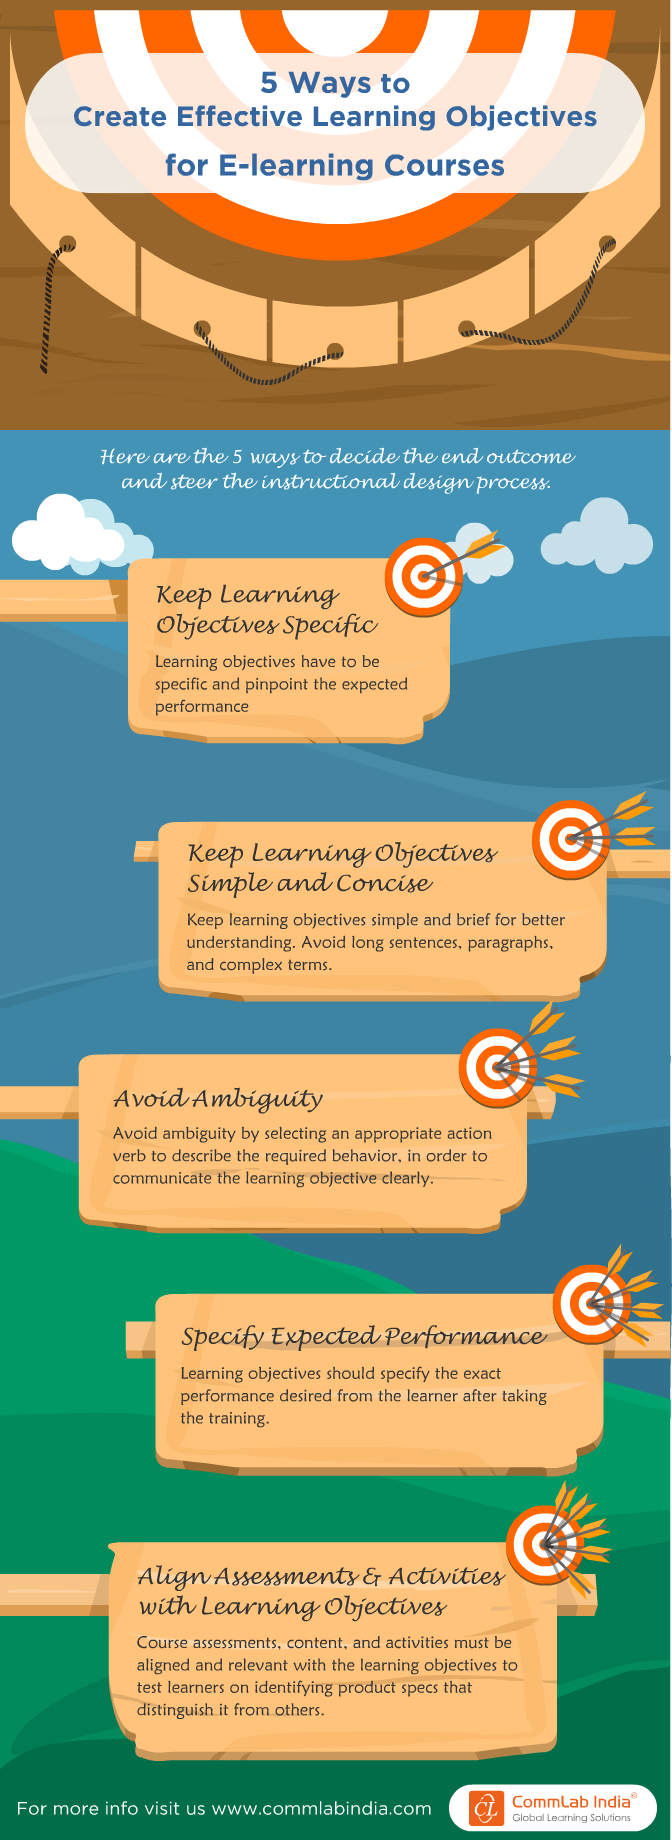 5 Ways to Create Effective Learning Objectives for E-learning Courses [Infographic]